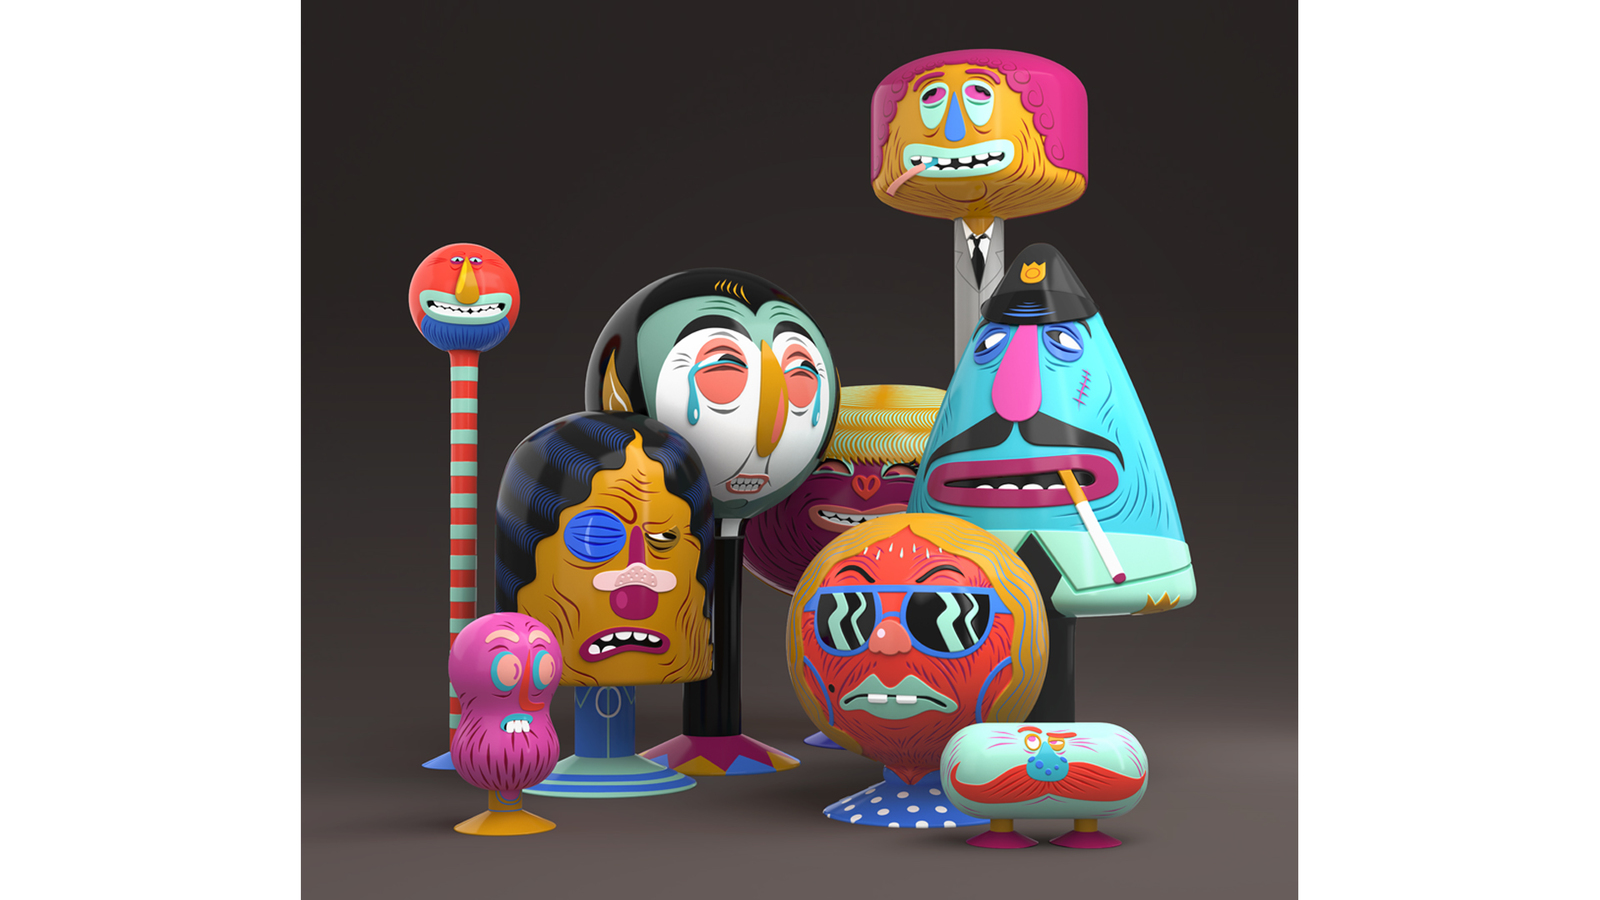 Group shot of The Block Family characters